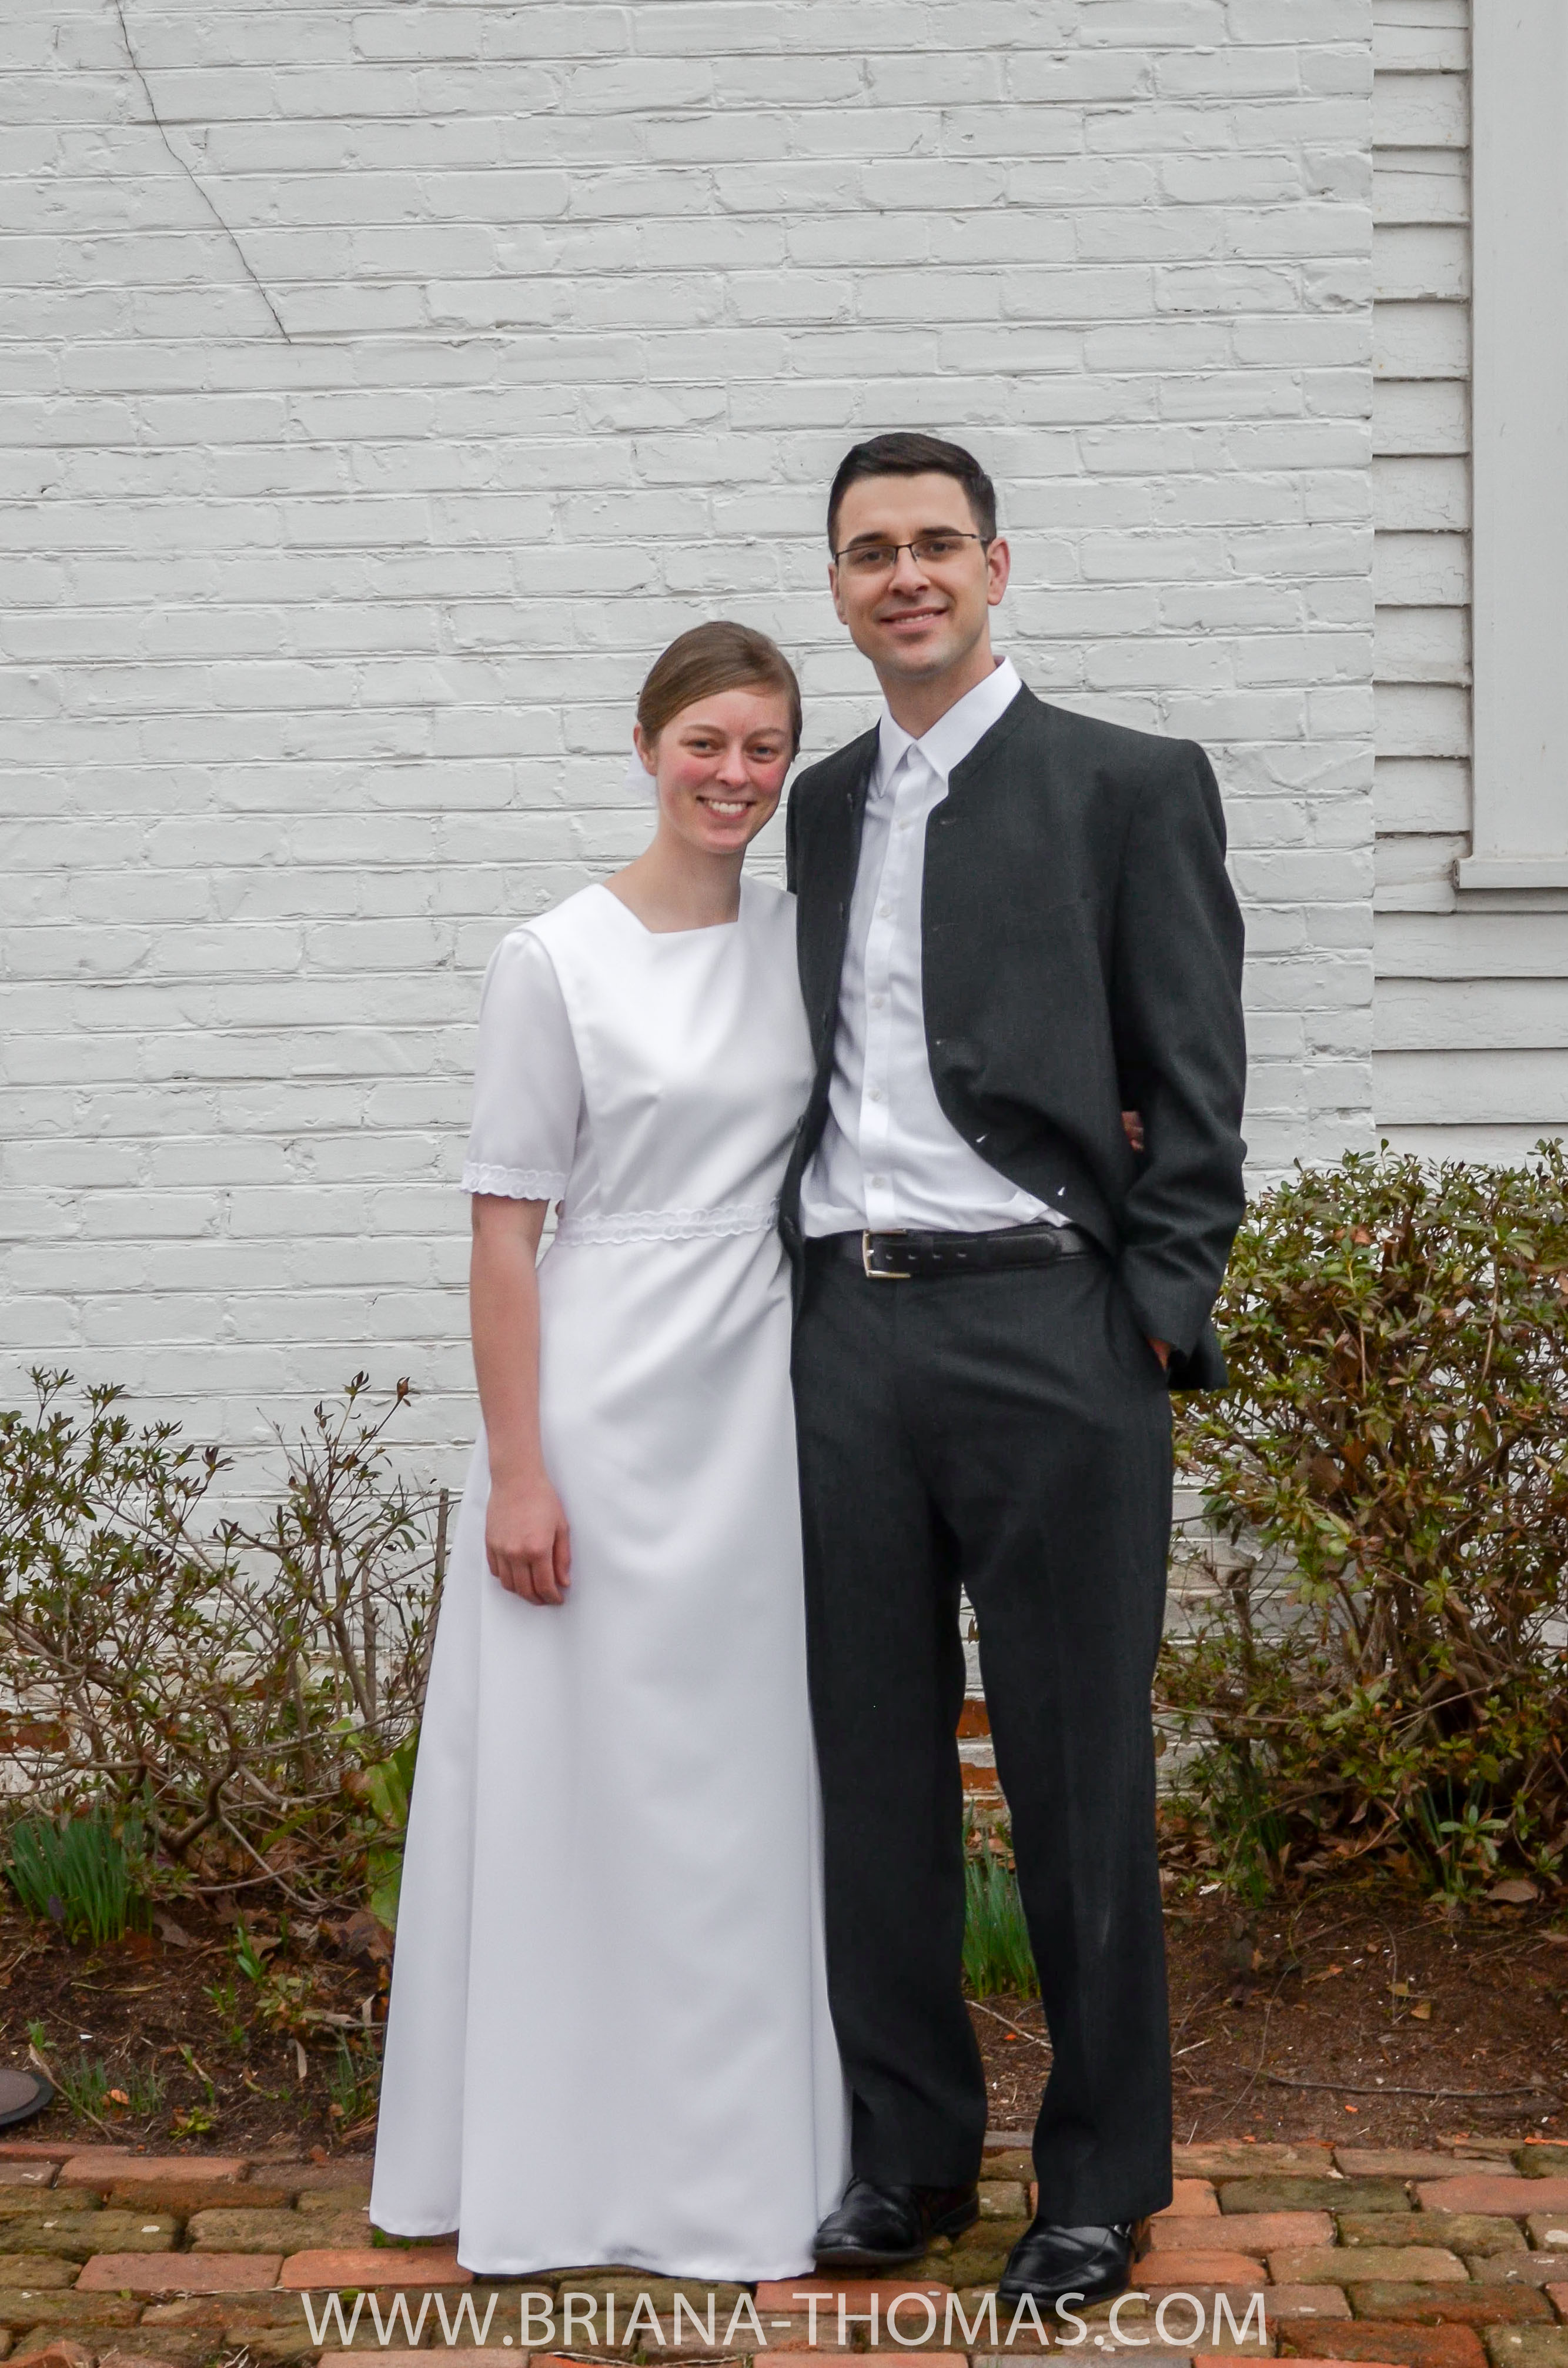 Ryan Burkholder, MD, and Briana Thomas, healty food blogger/author, were joined in marriage in February 2018. Here are some pictures from our wedding!